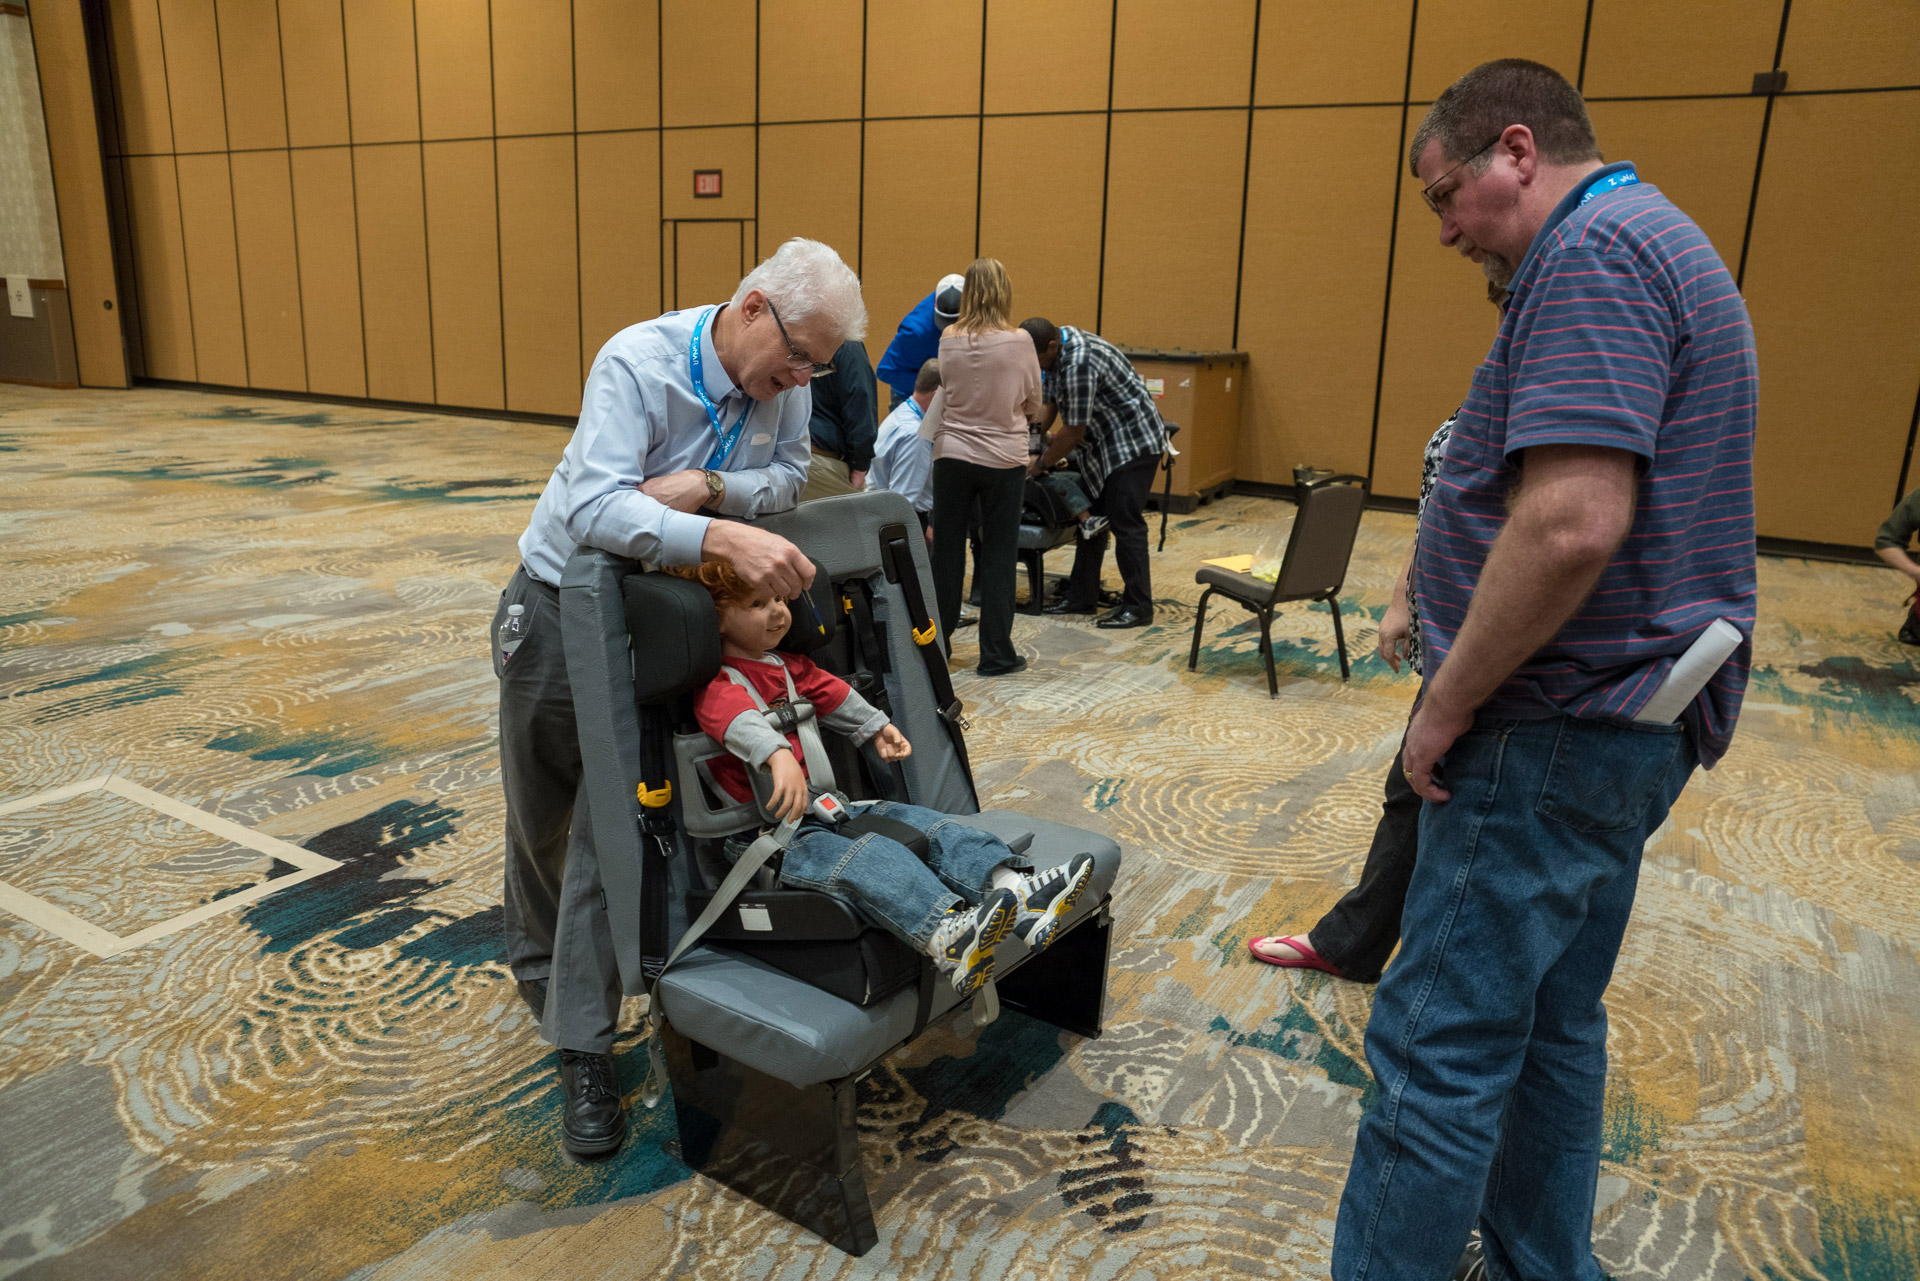 Charles Vits shows attendees of the 2018 TSD Conference the correct procedure for securing a student in a forward-facing car seat on a school bus.